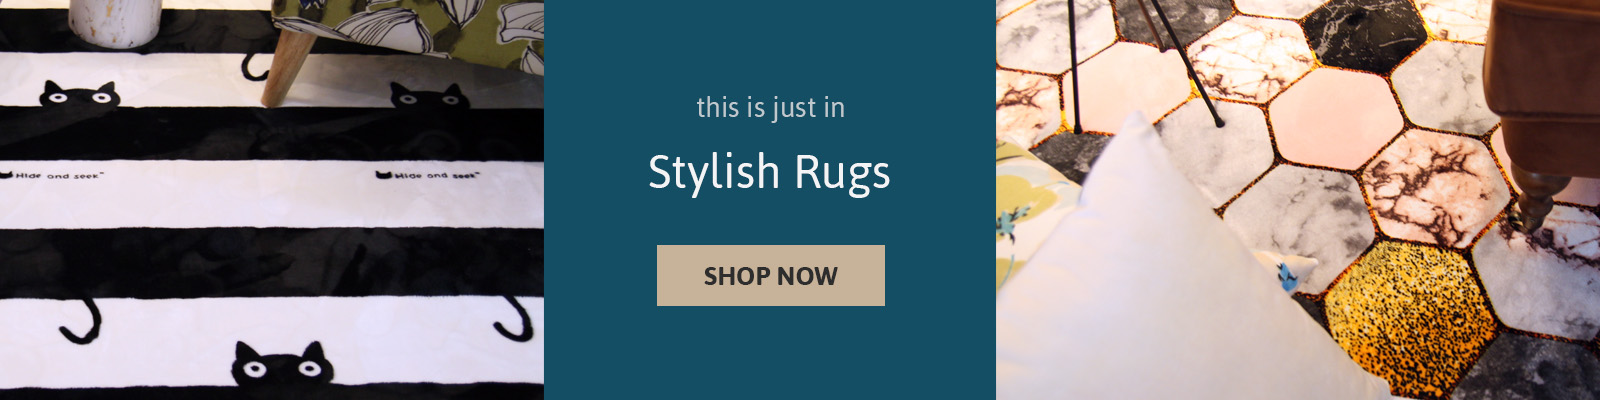 new stylish rugs